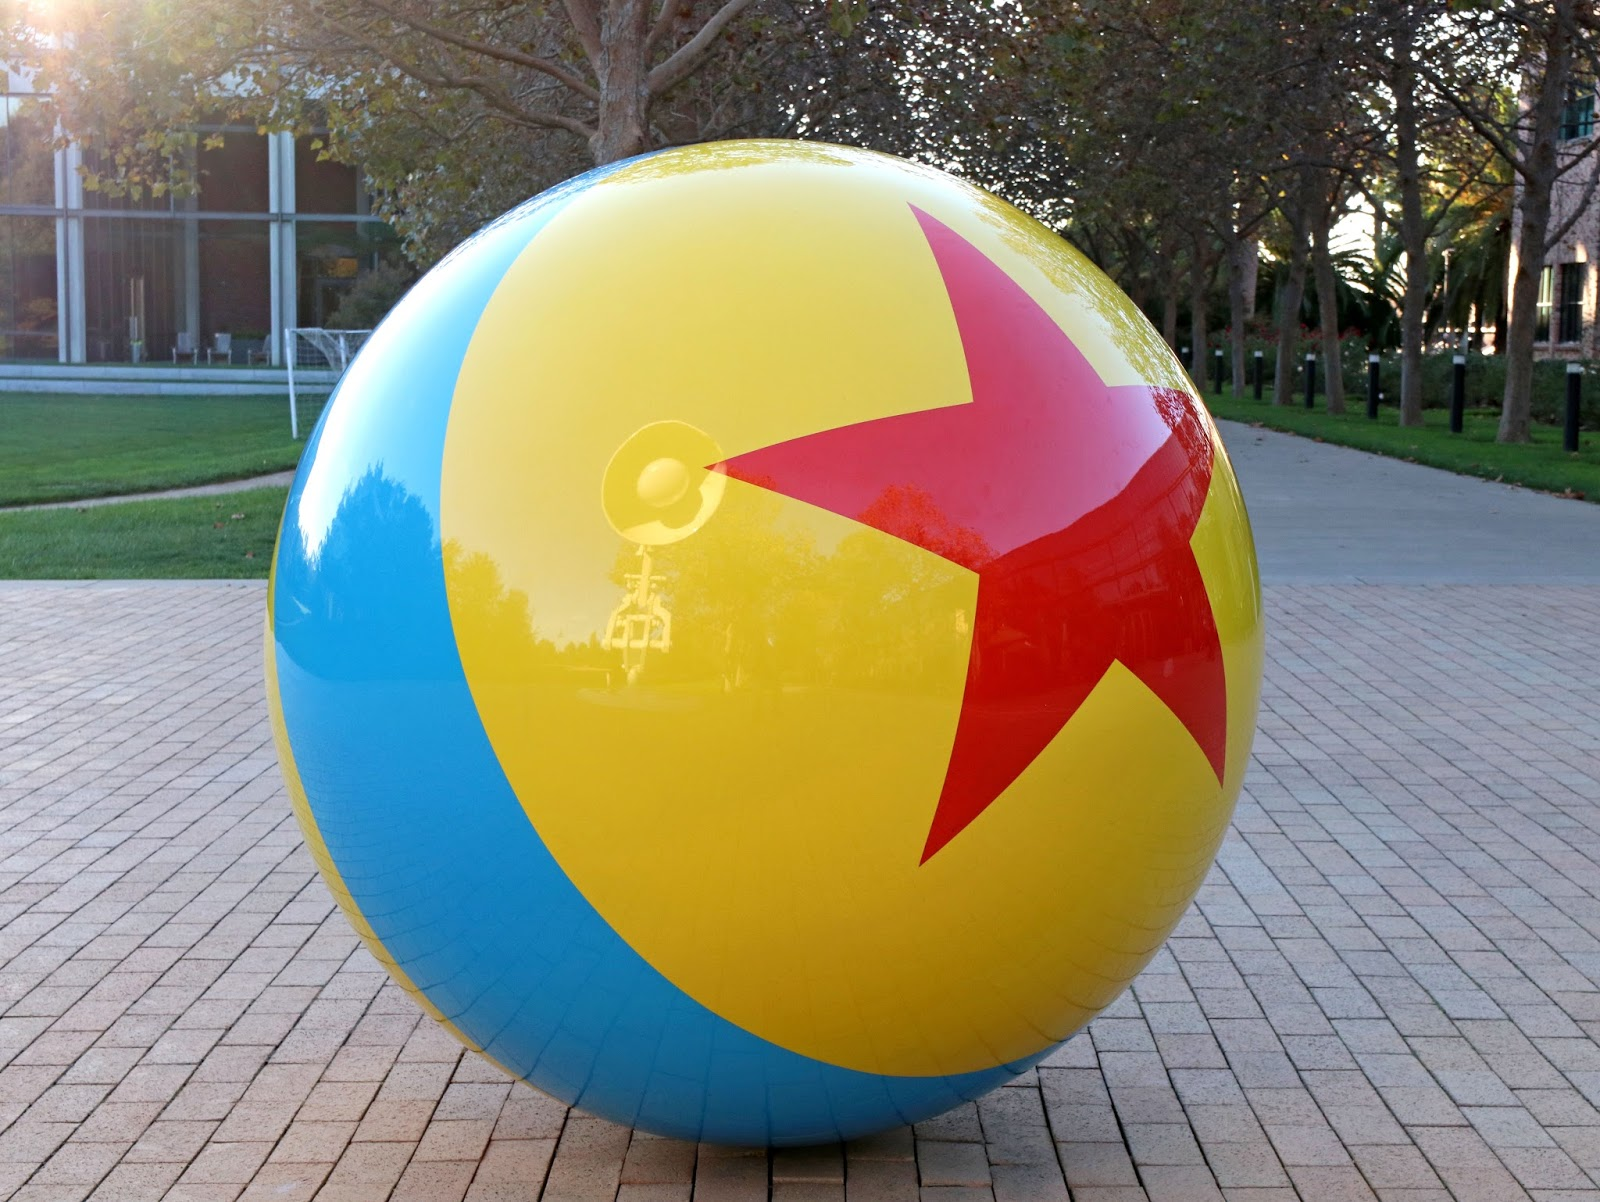 pixar studios giant luxo lamp and ball